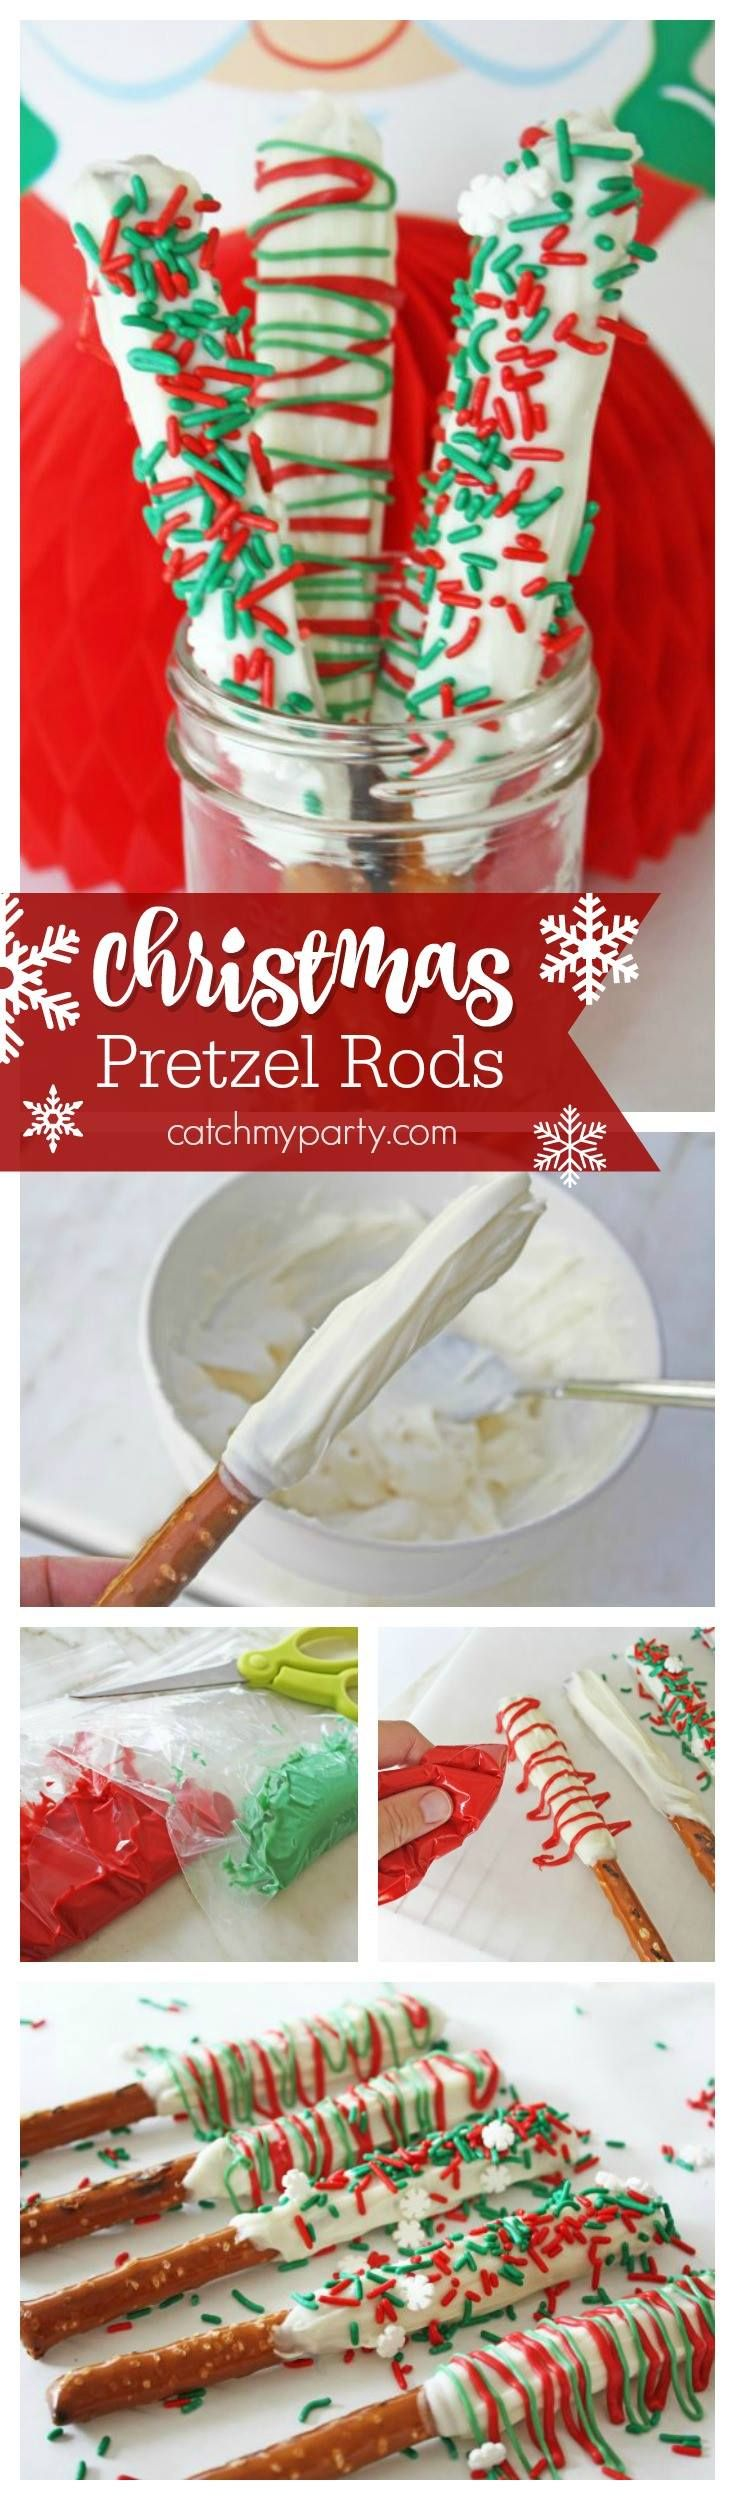 Make these easy white chocolate pretzels rods for Christmas. So easy to make -- just add sprinkles or colored candy melts. See more Christmas party ideas at CatchMyParty.com